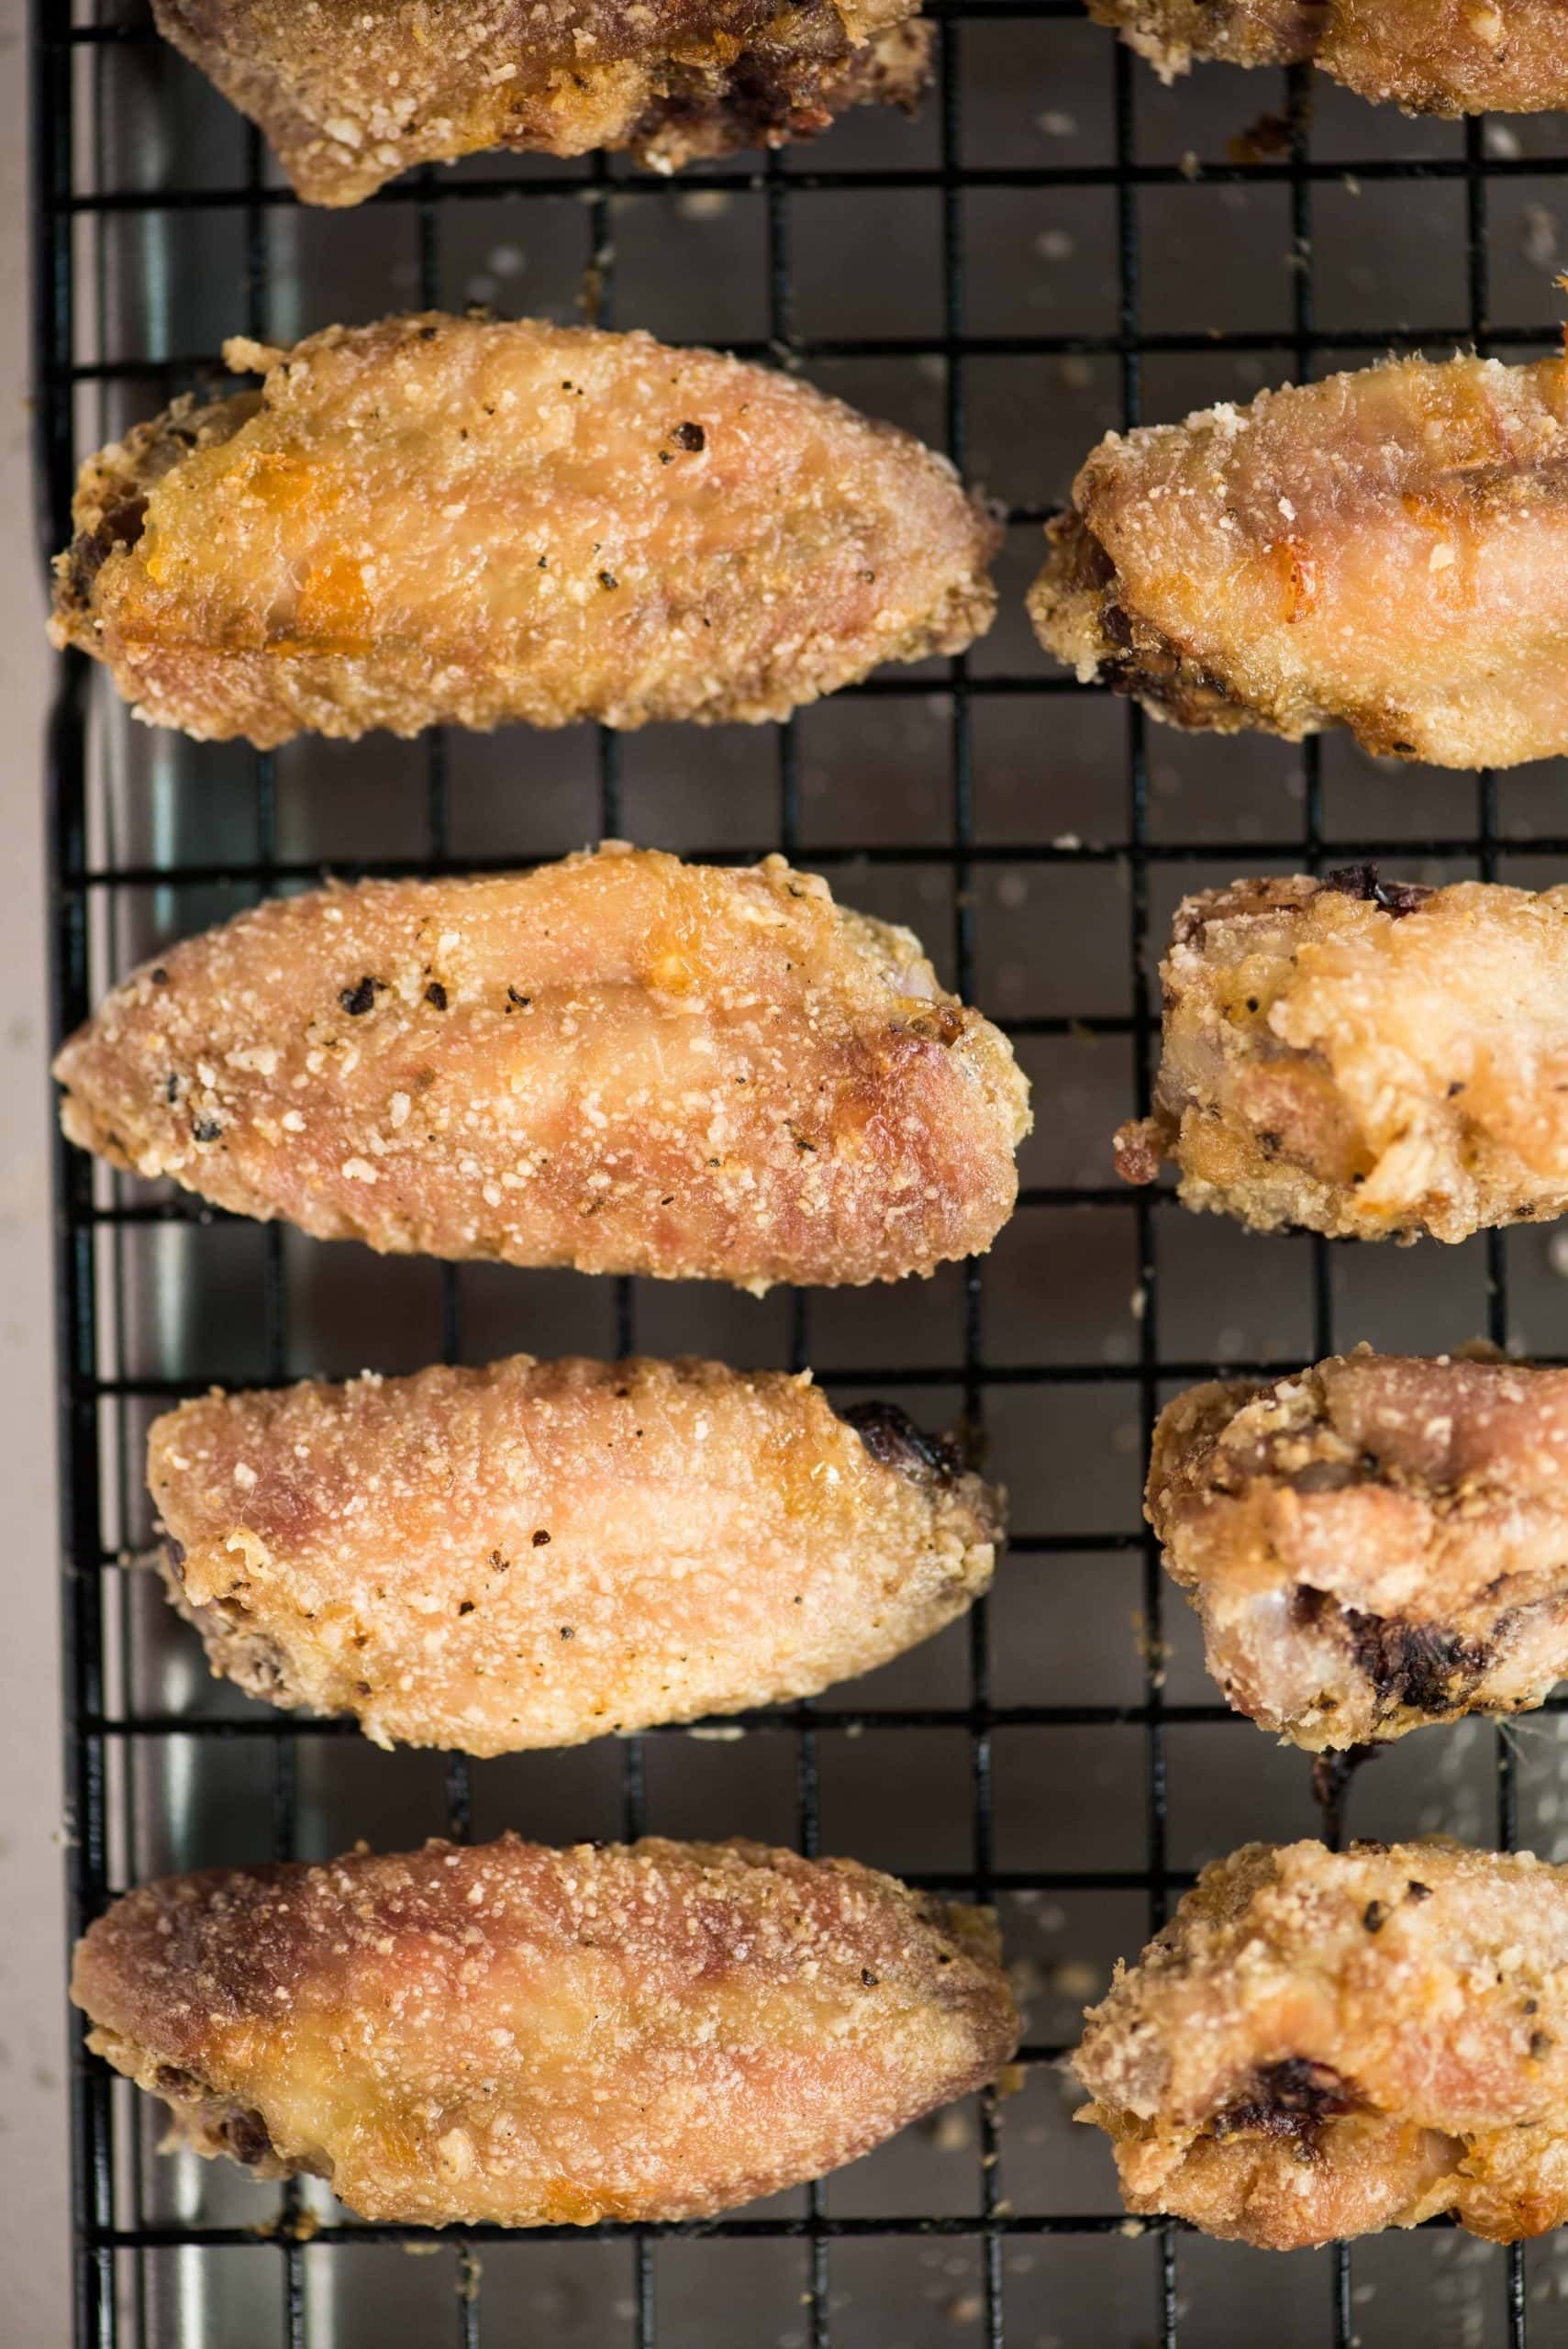 Oven baked Crispy Chicken Wings